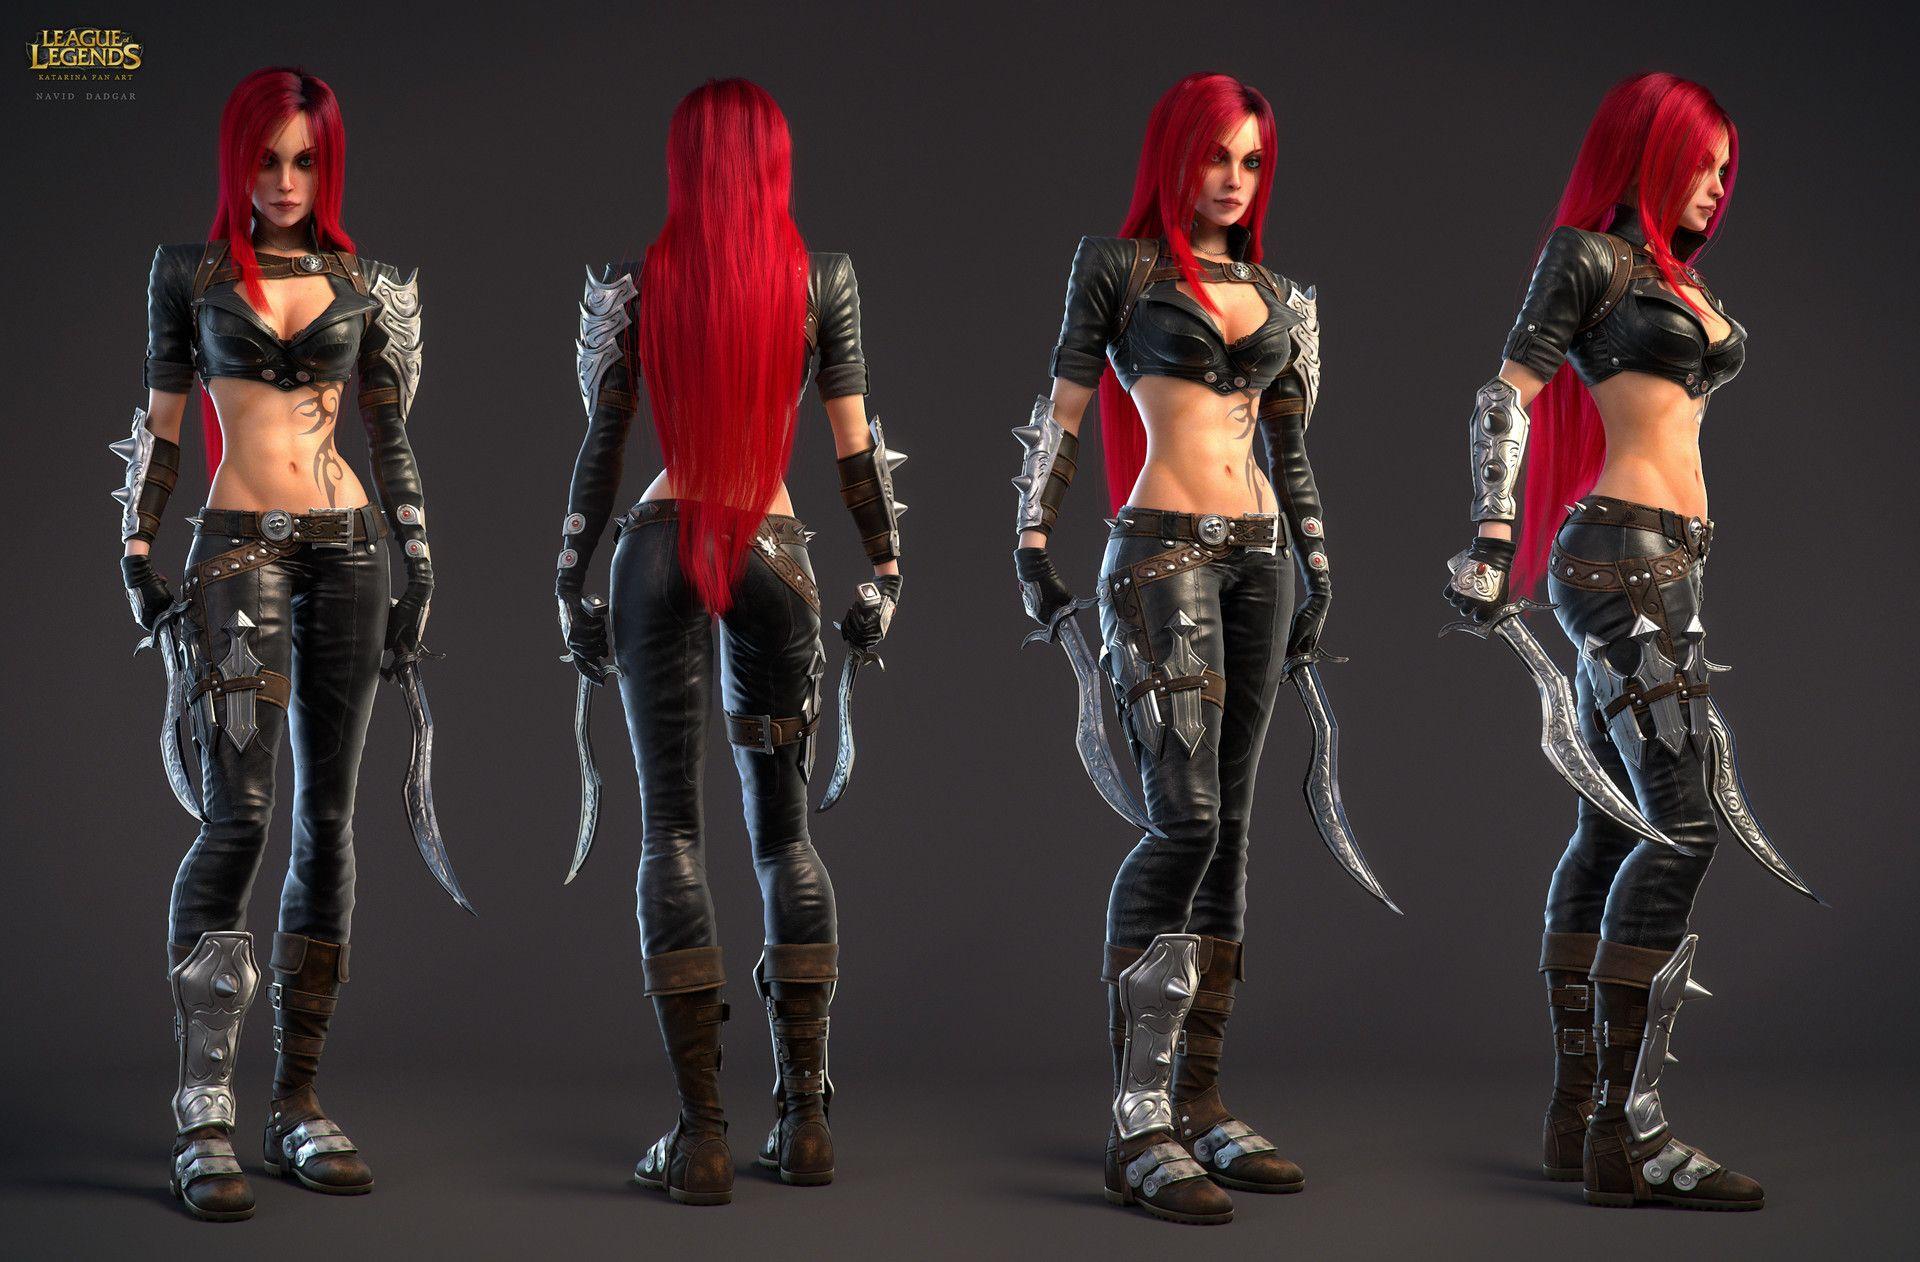 Katarina champion fan art